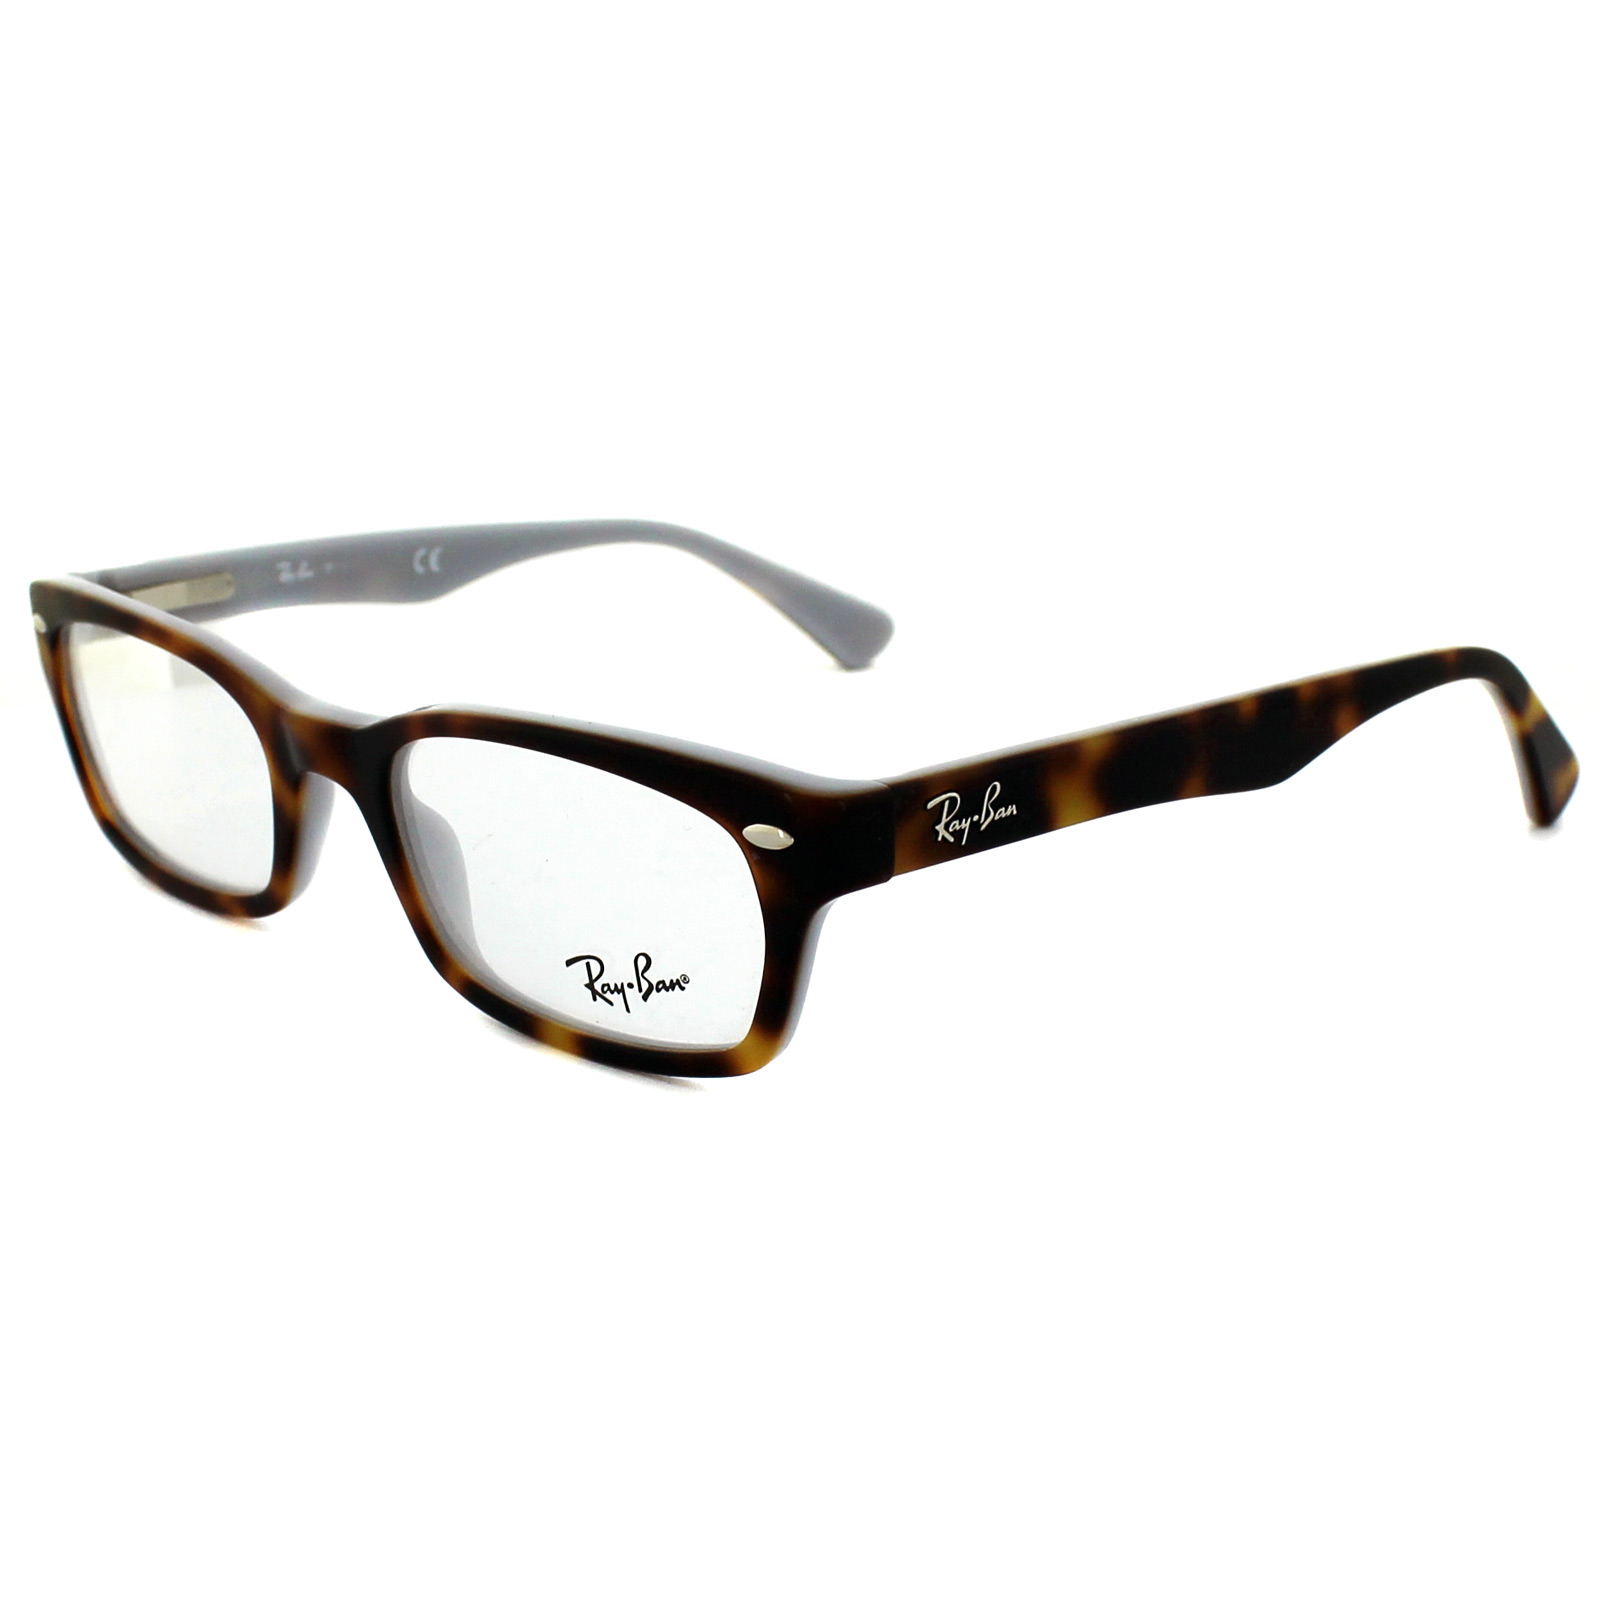 Ray-Ban Glasses Frames 5150 5238 Top Havana on Opal Blue ...